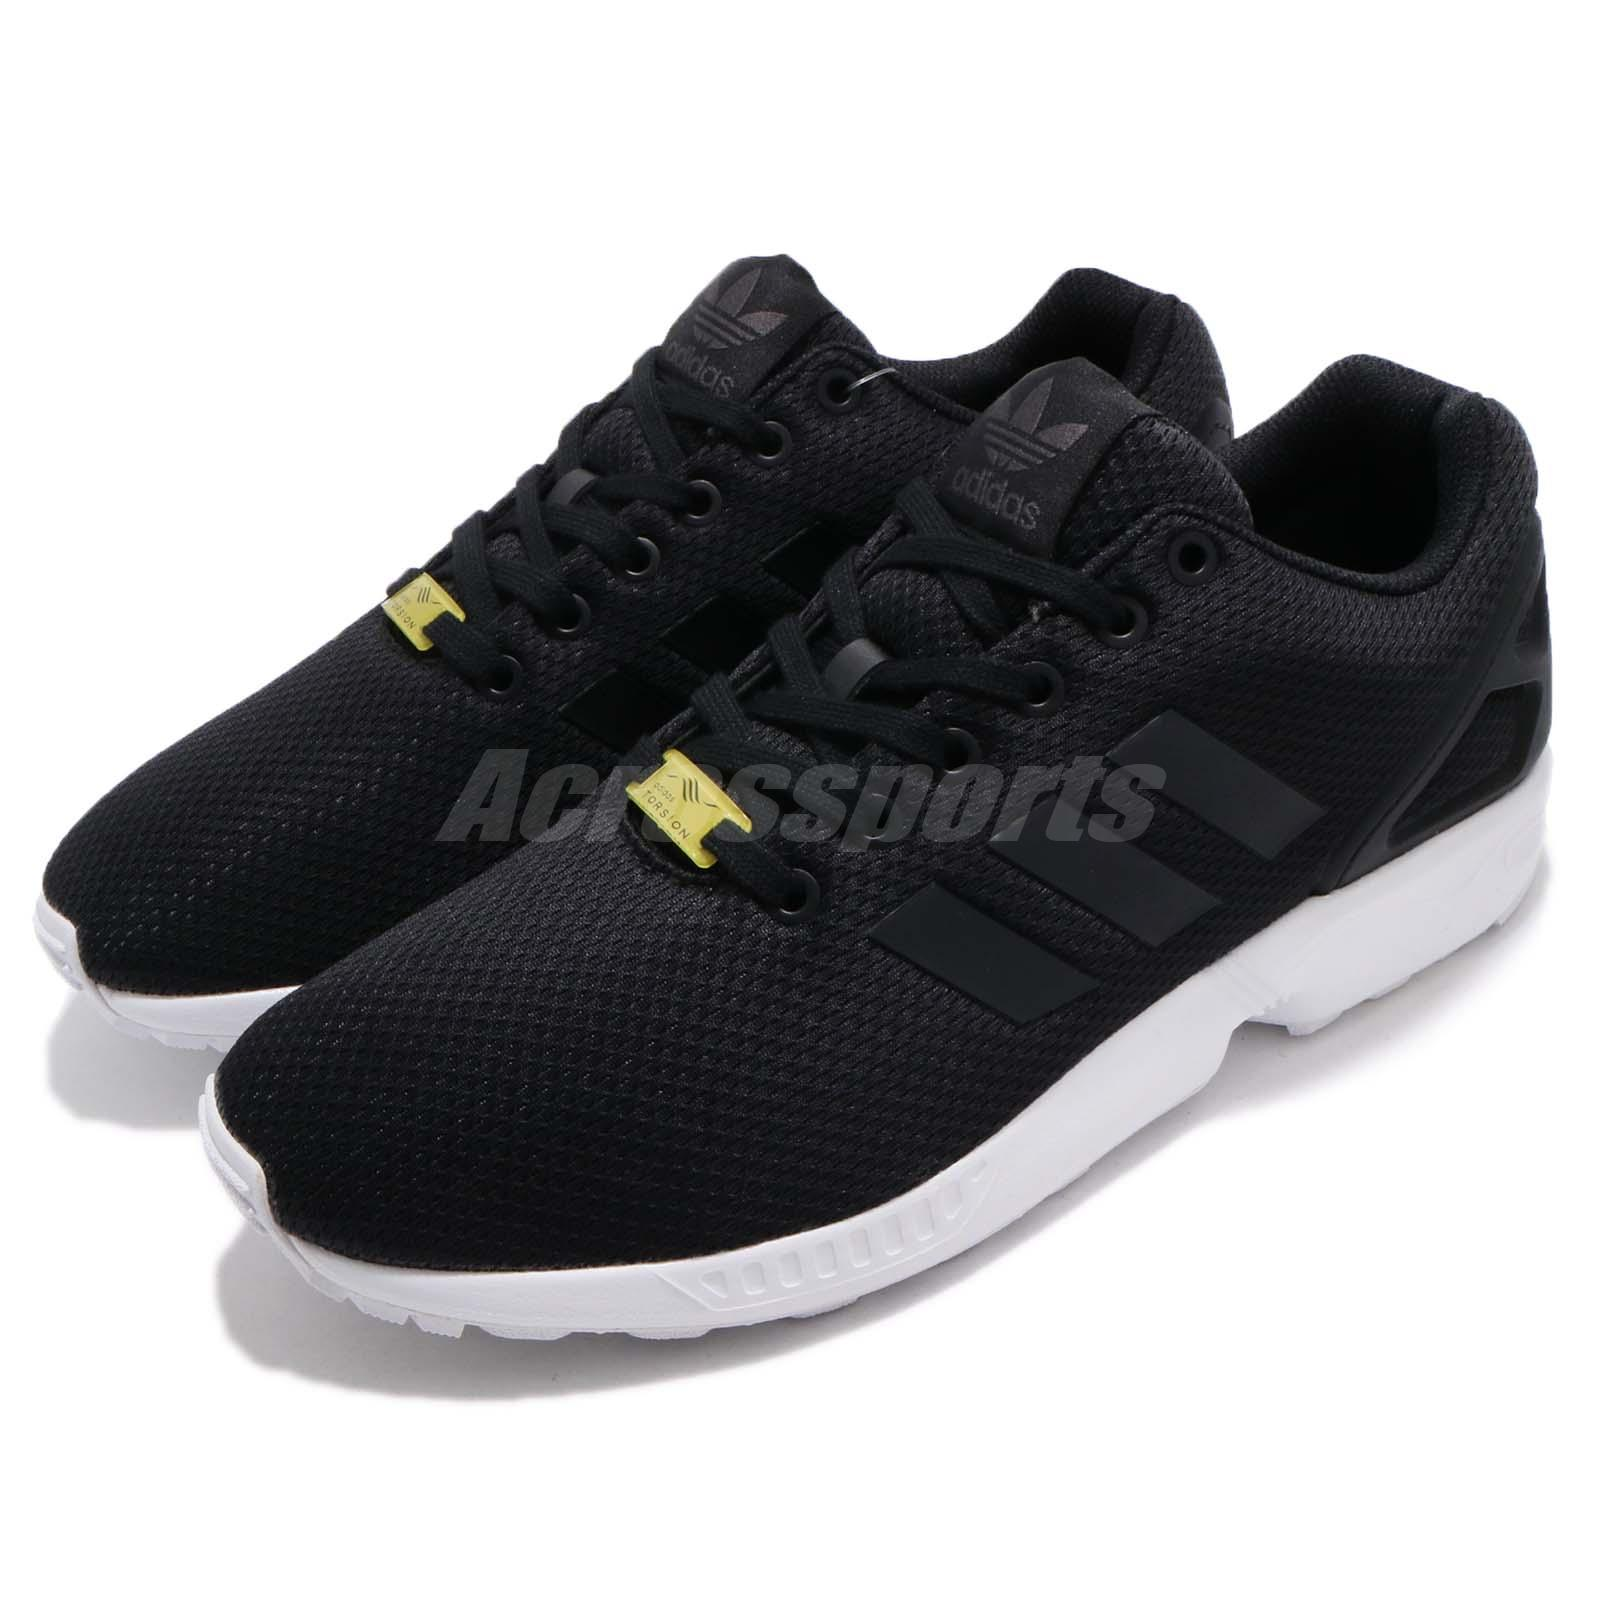 099e84be6 Details about adidas Originals ZX Flux Black White Men Fashion Running Shoes  Sneakers M19840